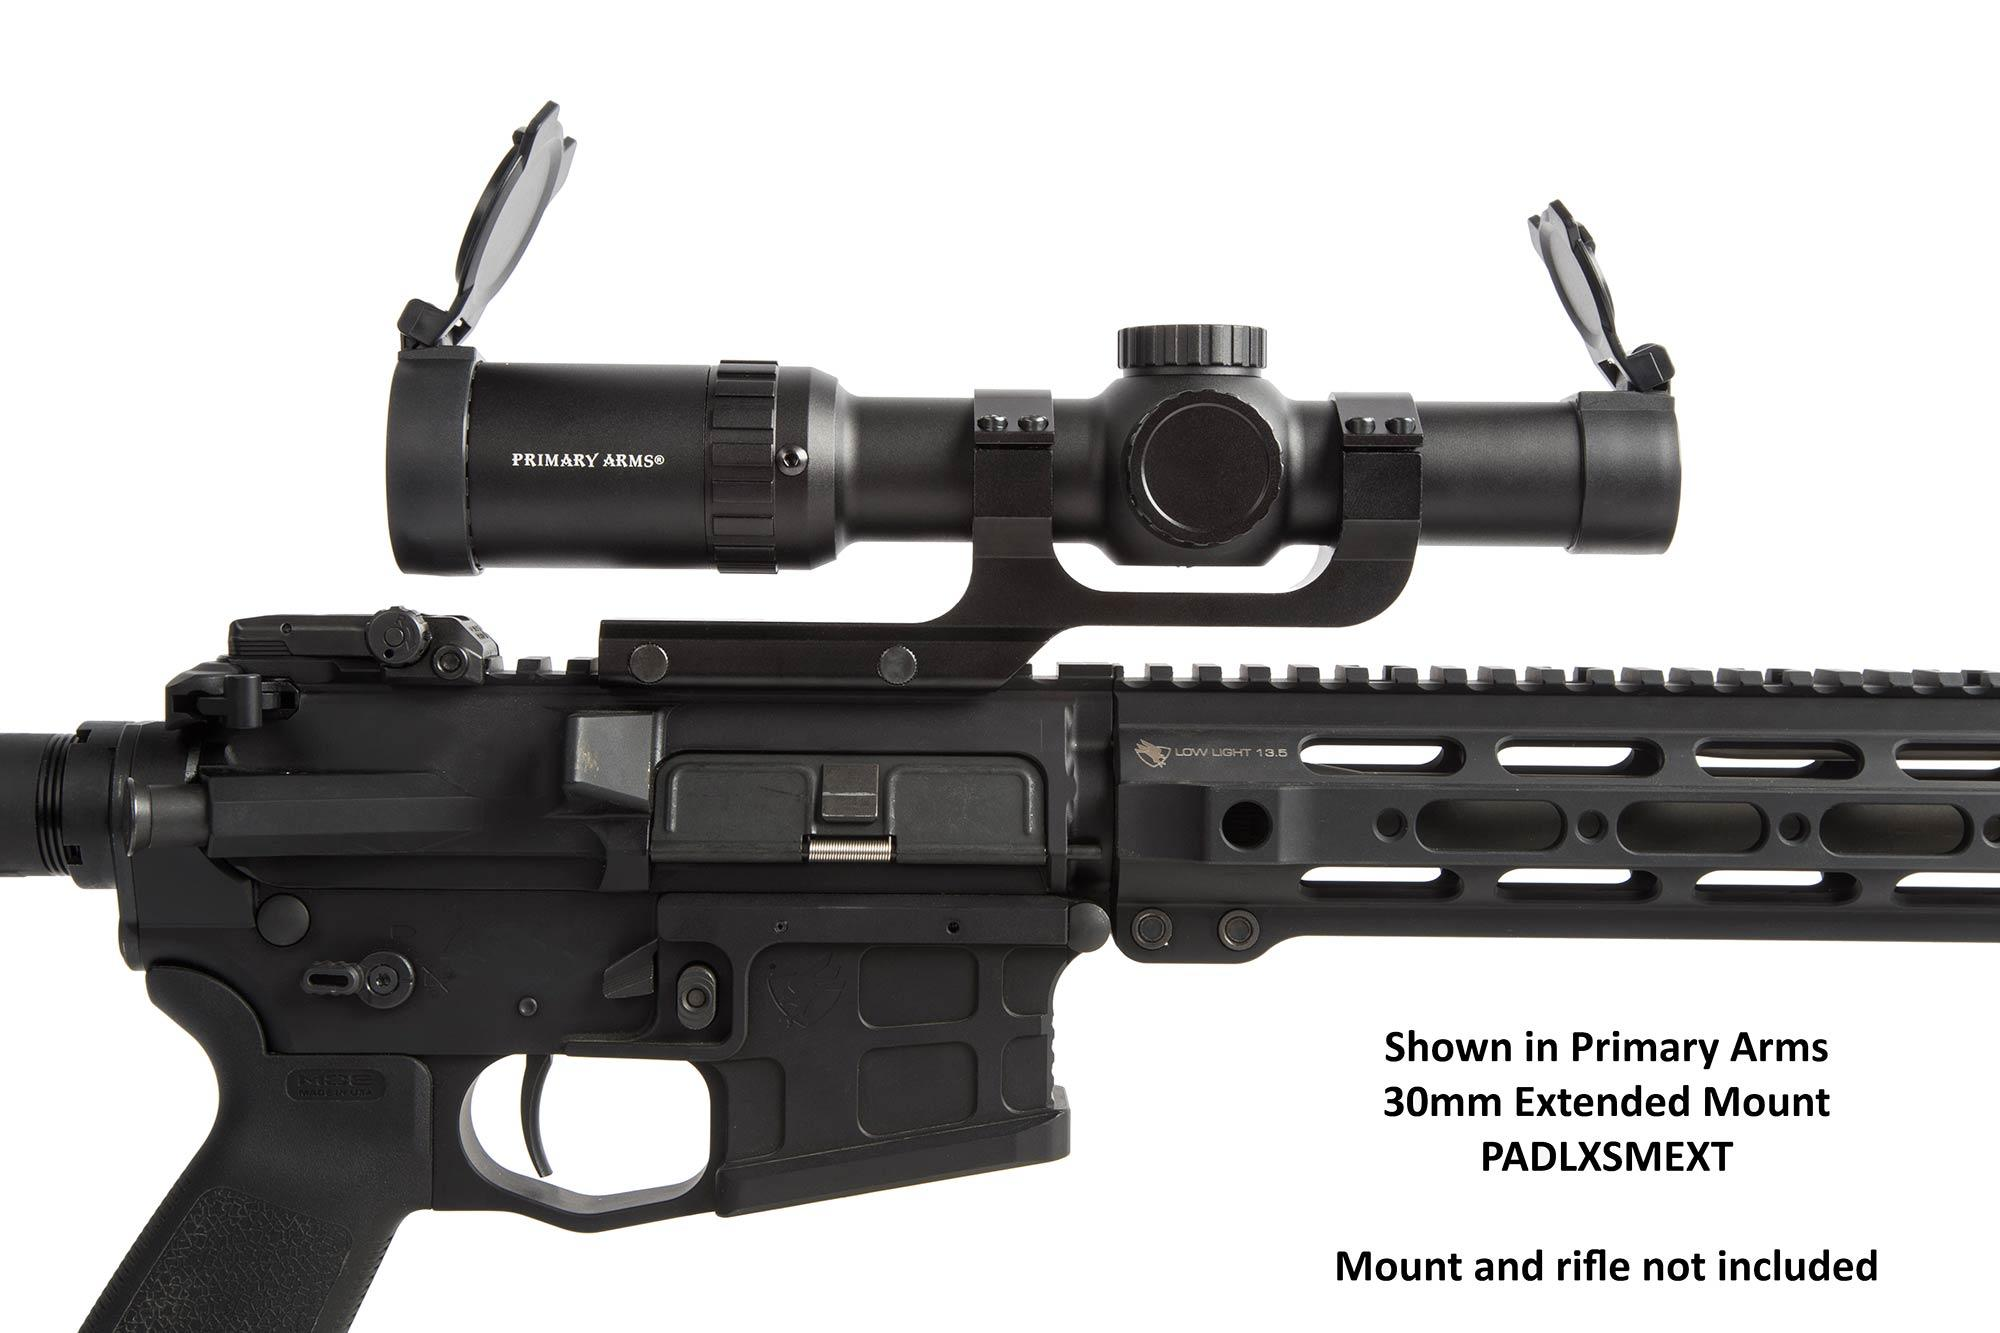 The Primary Arms Scopes with ACSS reticle has auto ranging capabilities